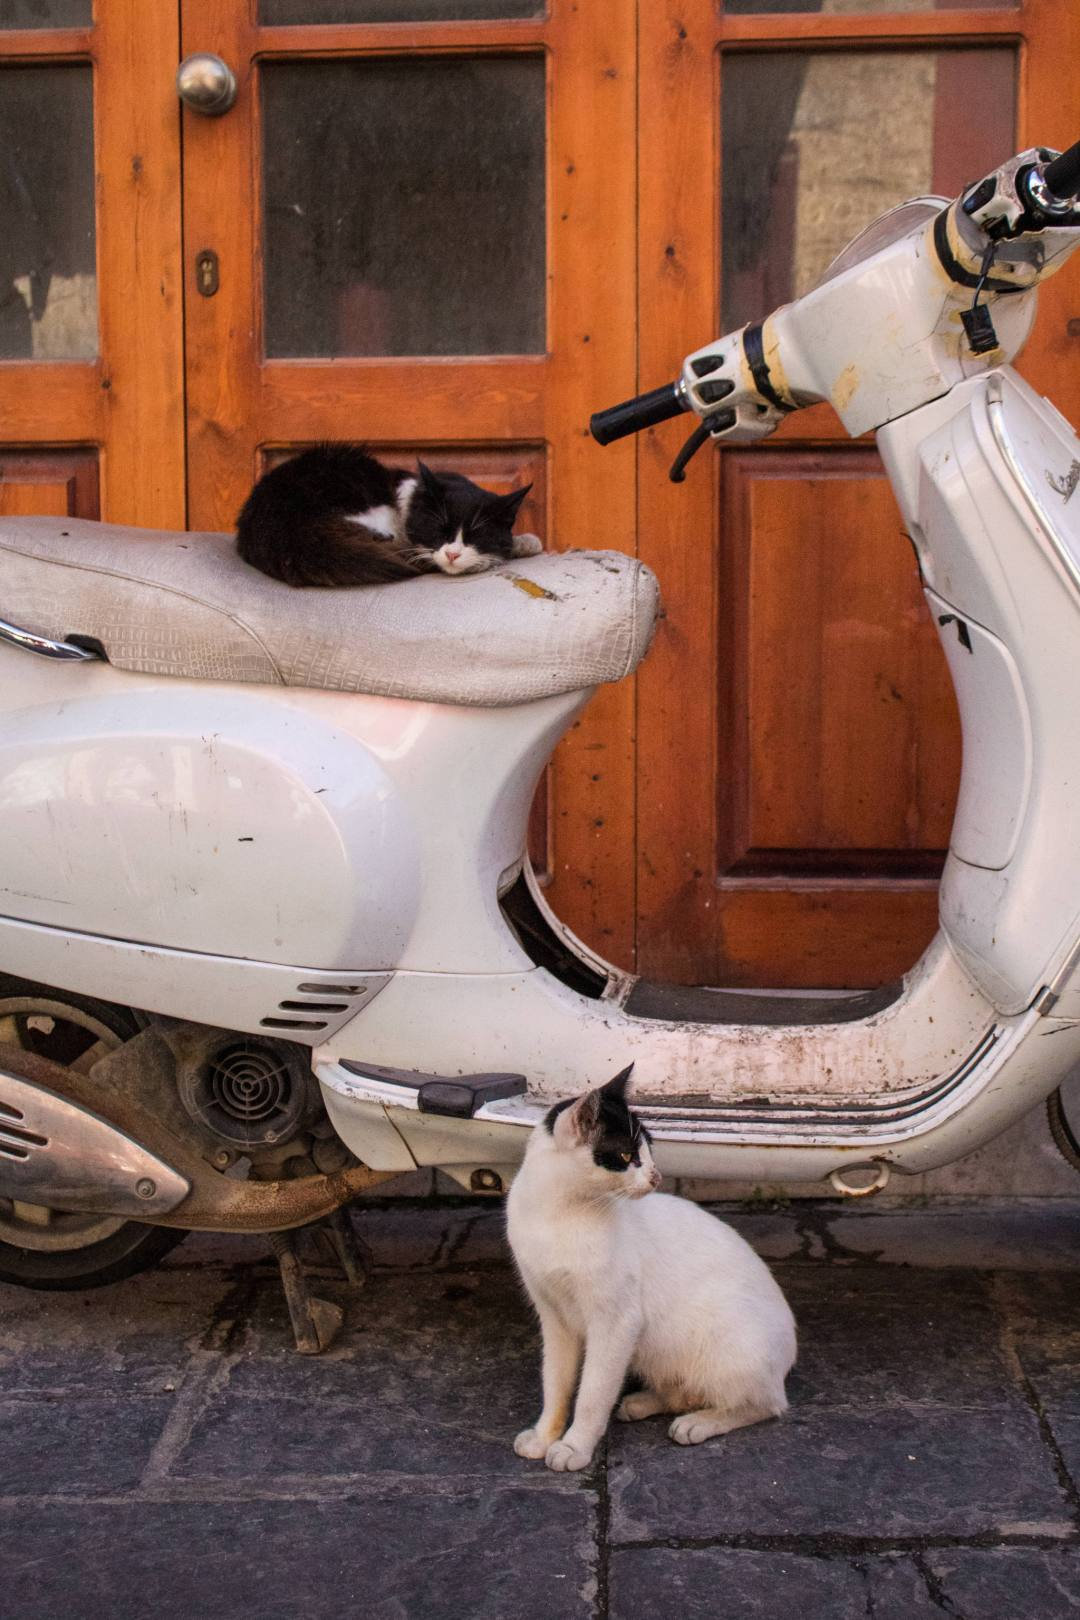 Cats sitting on moped in Rhodes